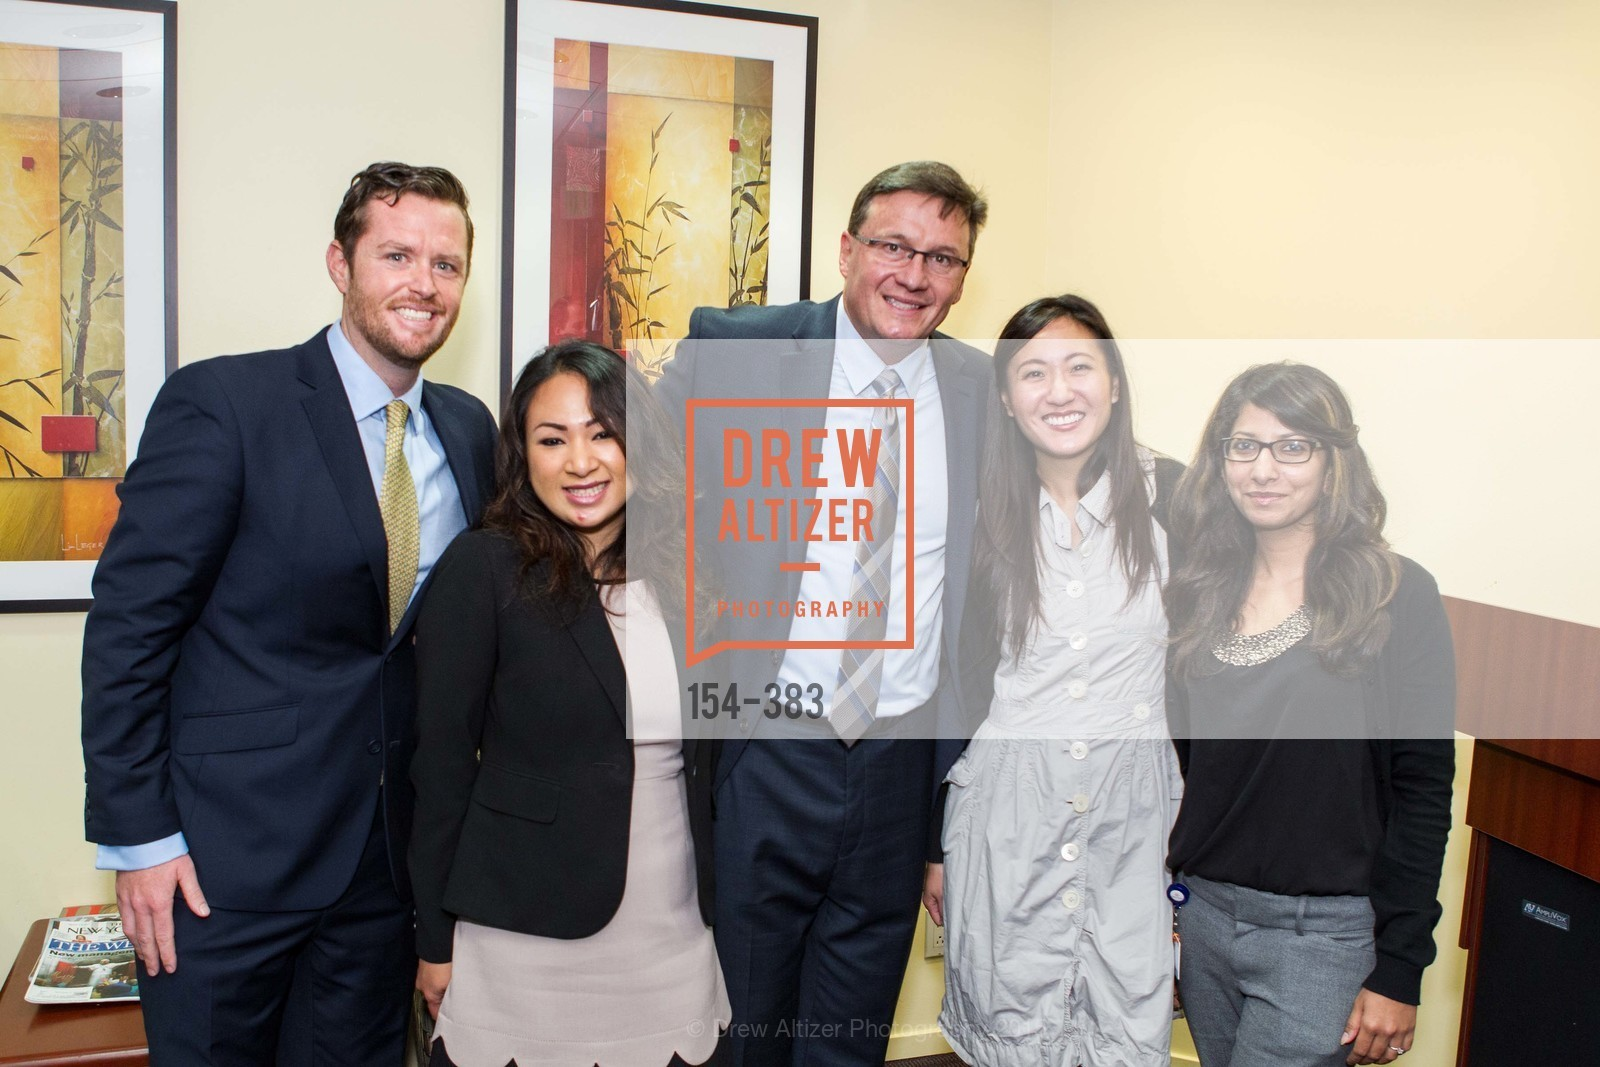 Daragh Byrne, Melanie Guhit, Brian van Wheel, Joyce Tam, Sandhya Gopalan, Groundbreaking ceremony for the Phoebe Cowles Center for Comprehensive Pain Treatment, Phoebe Cowles Center for Comprehensive Pain Treatment. 1199 Bush Street, October 15th, 2015,Drew Altizer, Drew Altizer Photography, full-service agency, private events, San Francisco photographer, photographer california